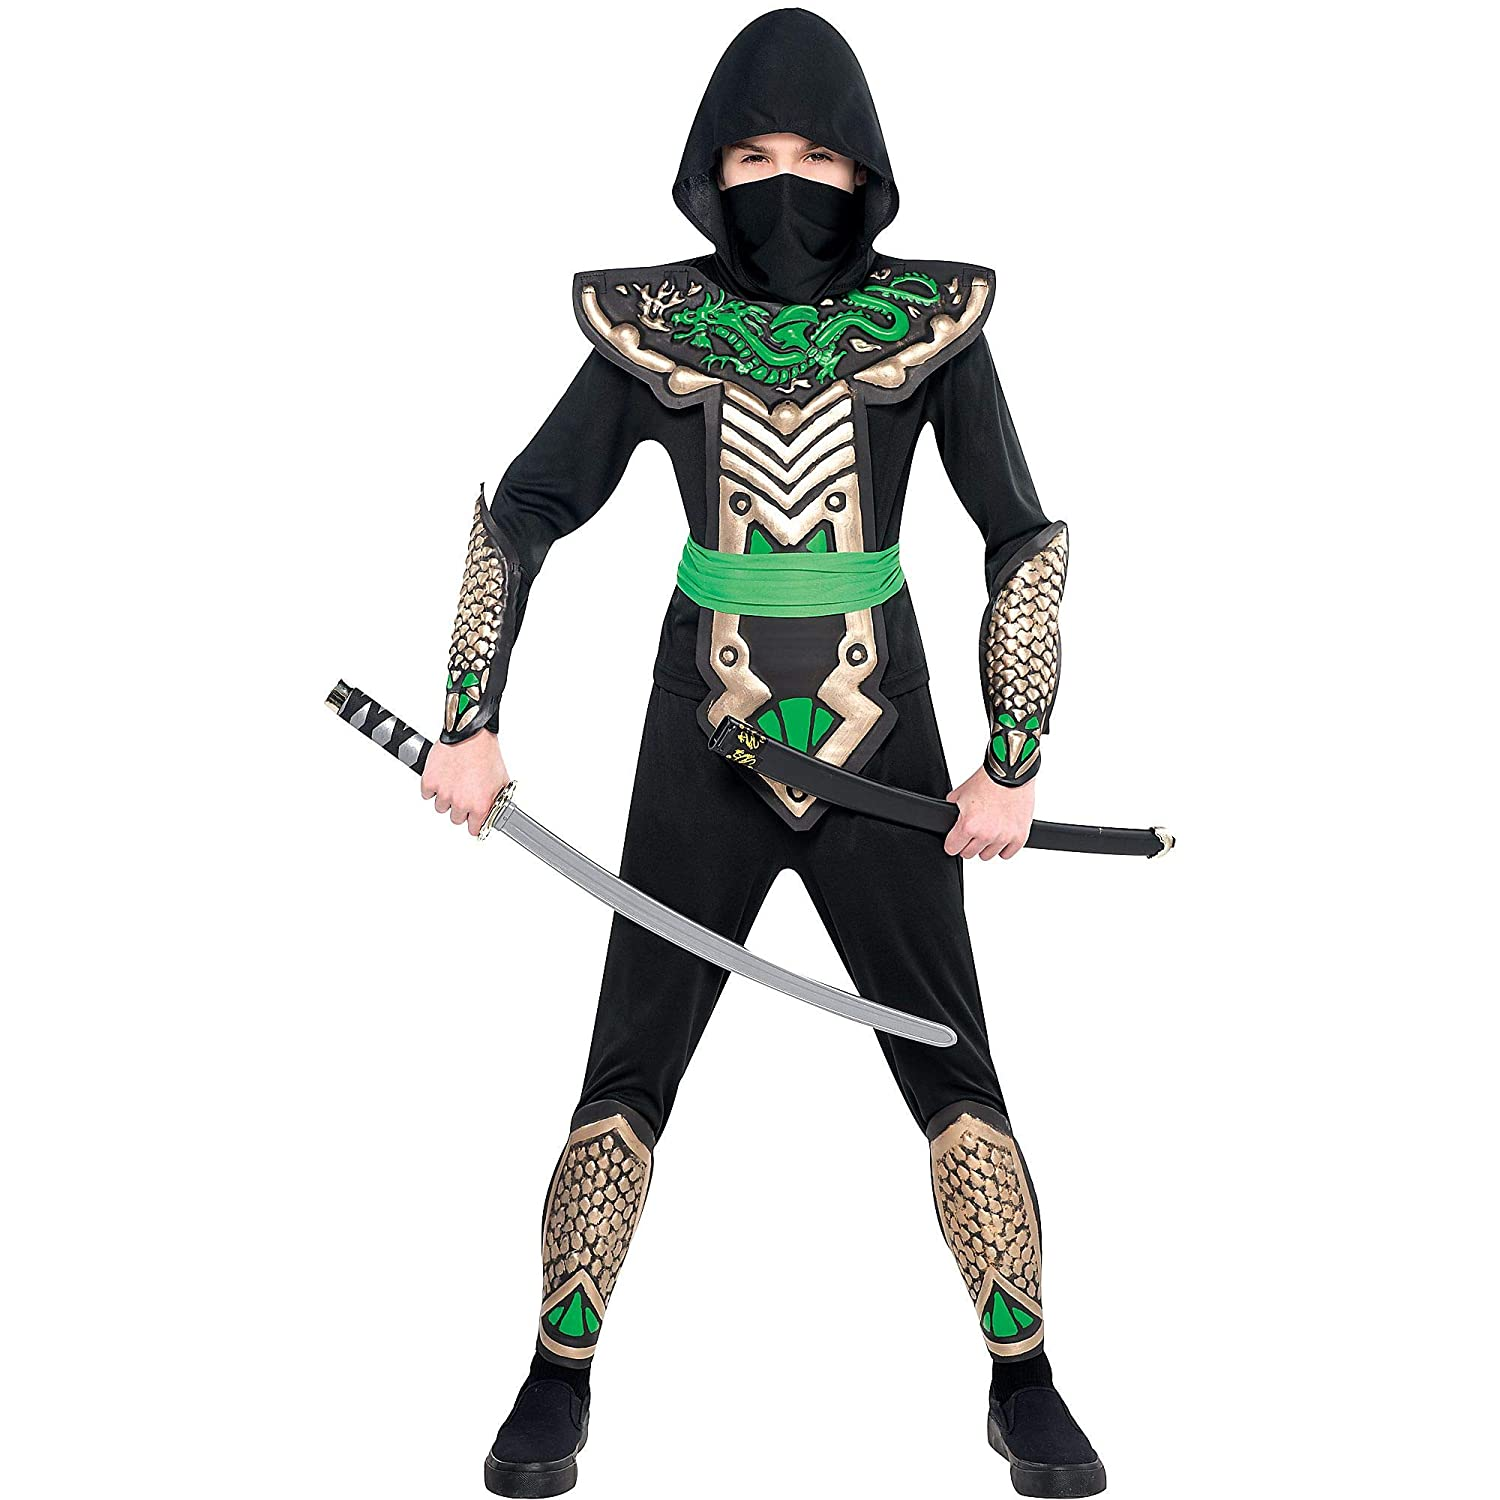 AMSCAN Ninja Dragon Halloween Costume for Boys, Large, with Included Accessories